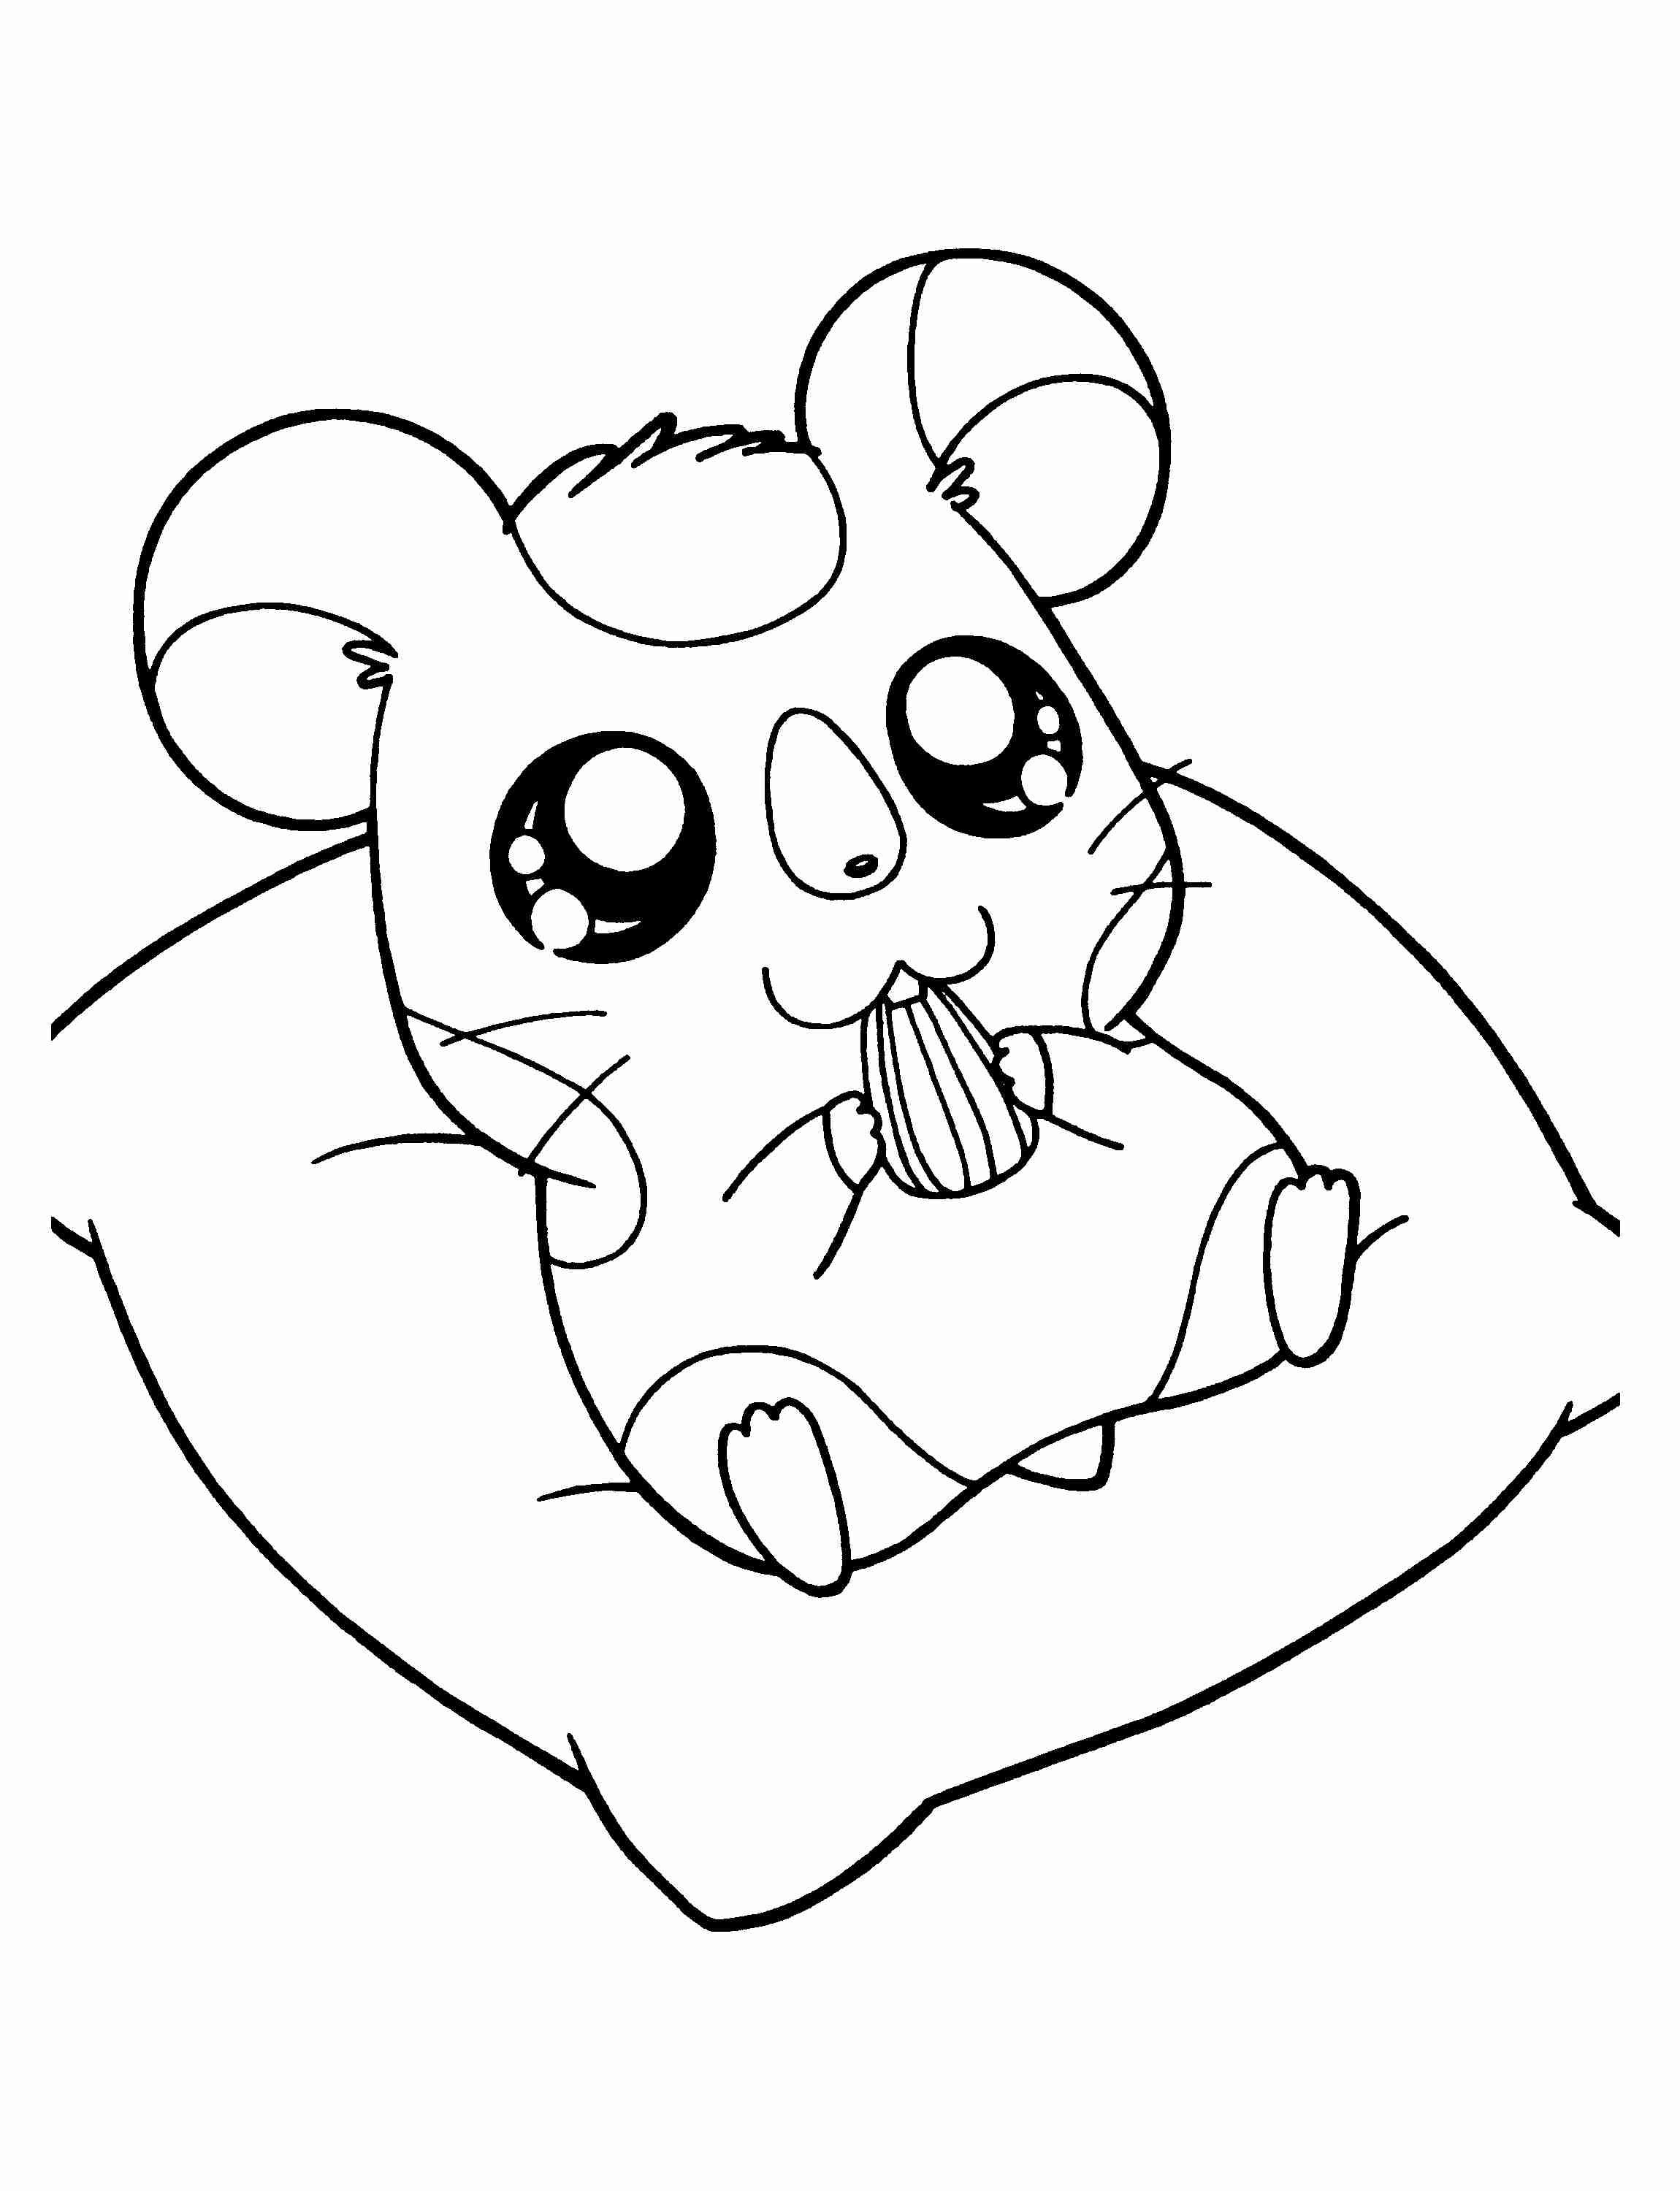 Hamster Coloring Pages - Best Coloring Pages For Kids